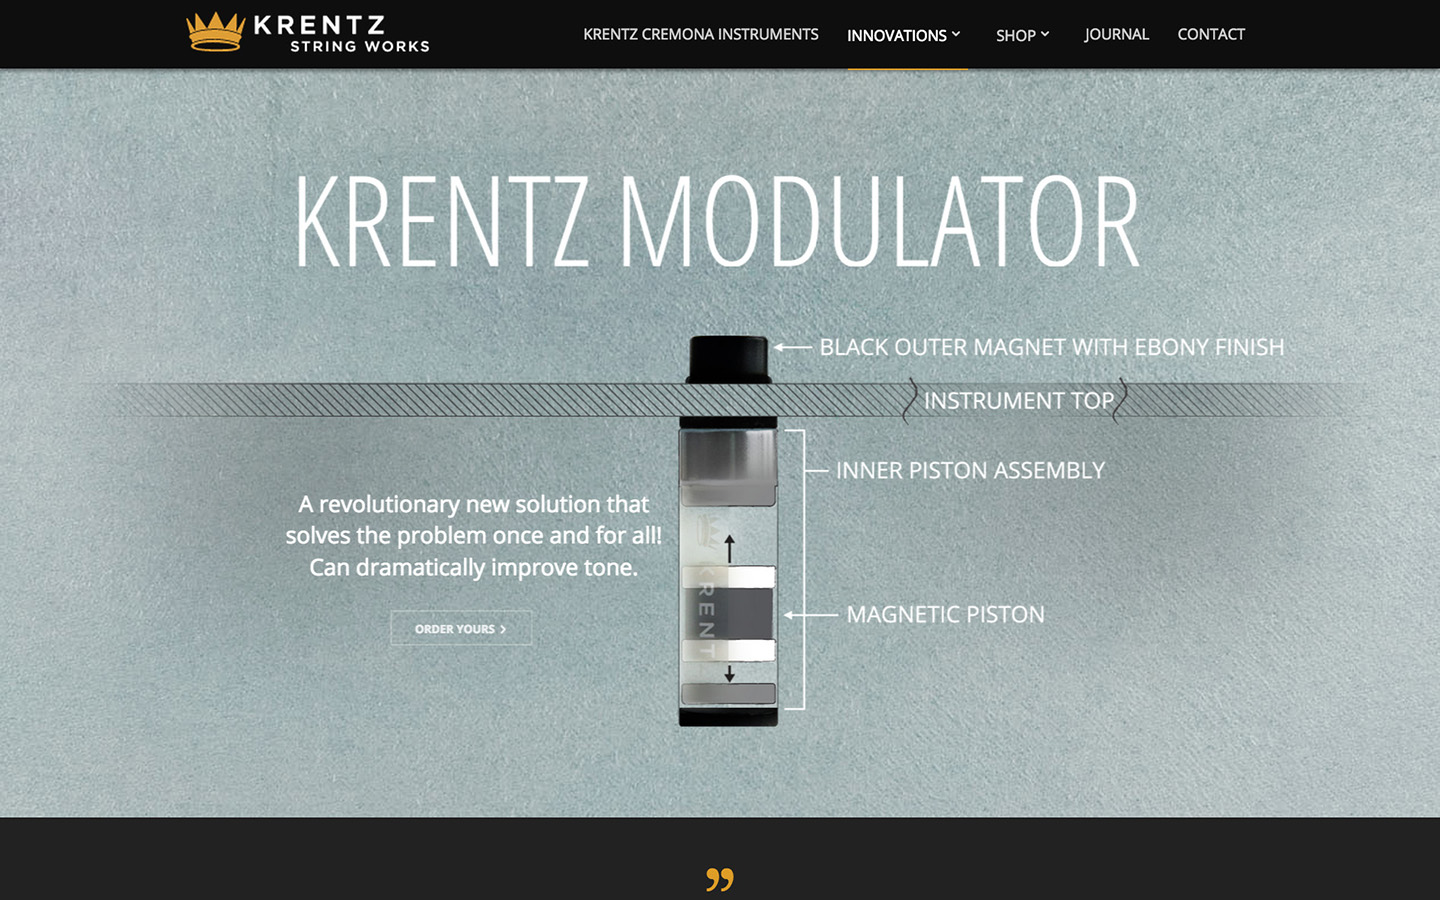 Krentz String Works Modulator Page